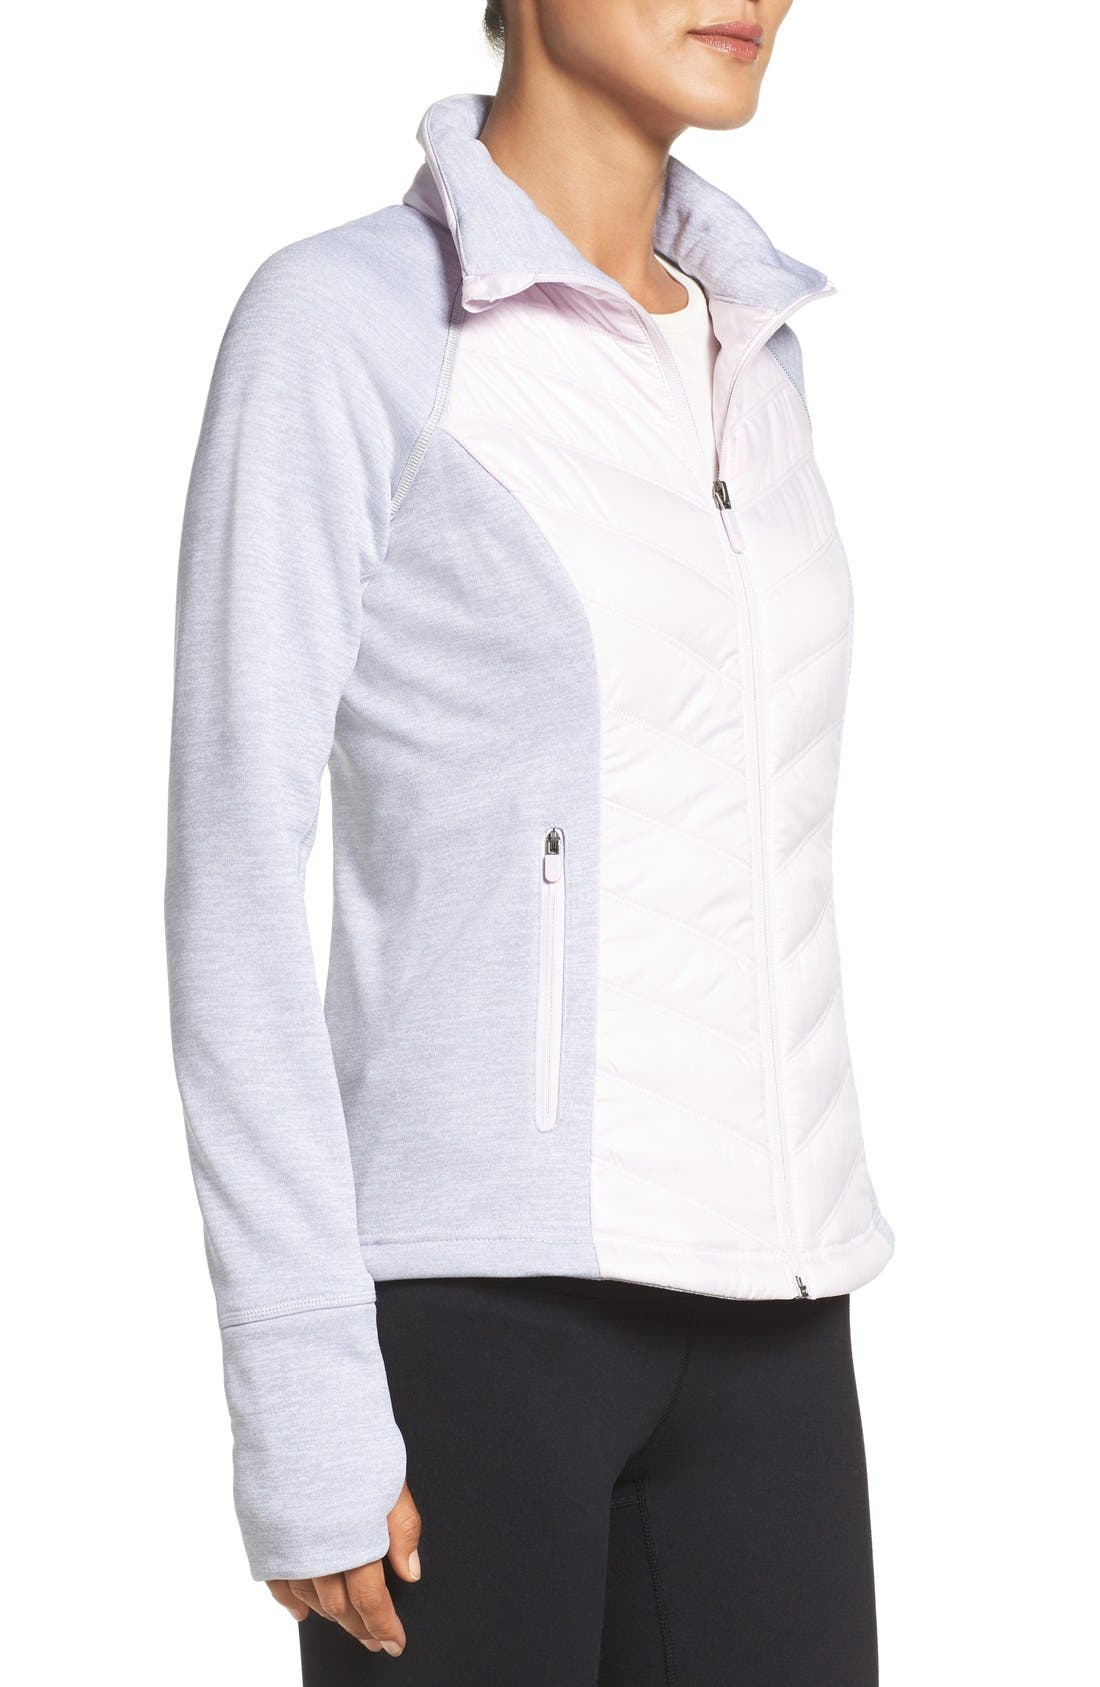 Zelfusion Reflective Quilted Jacket,                             Alternate thumbnail 27, color,